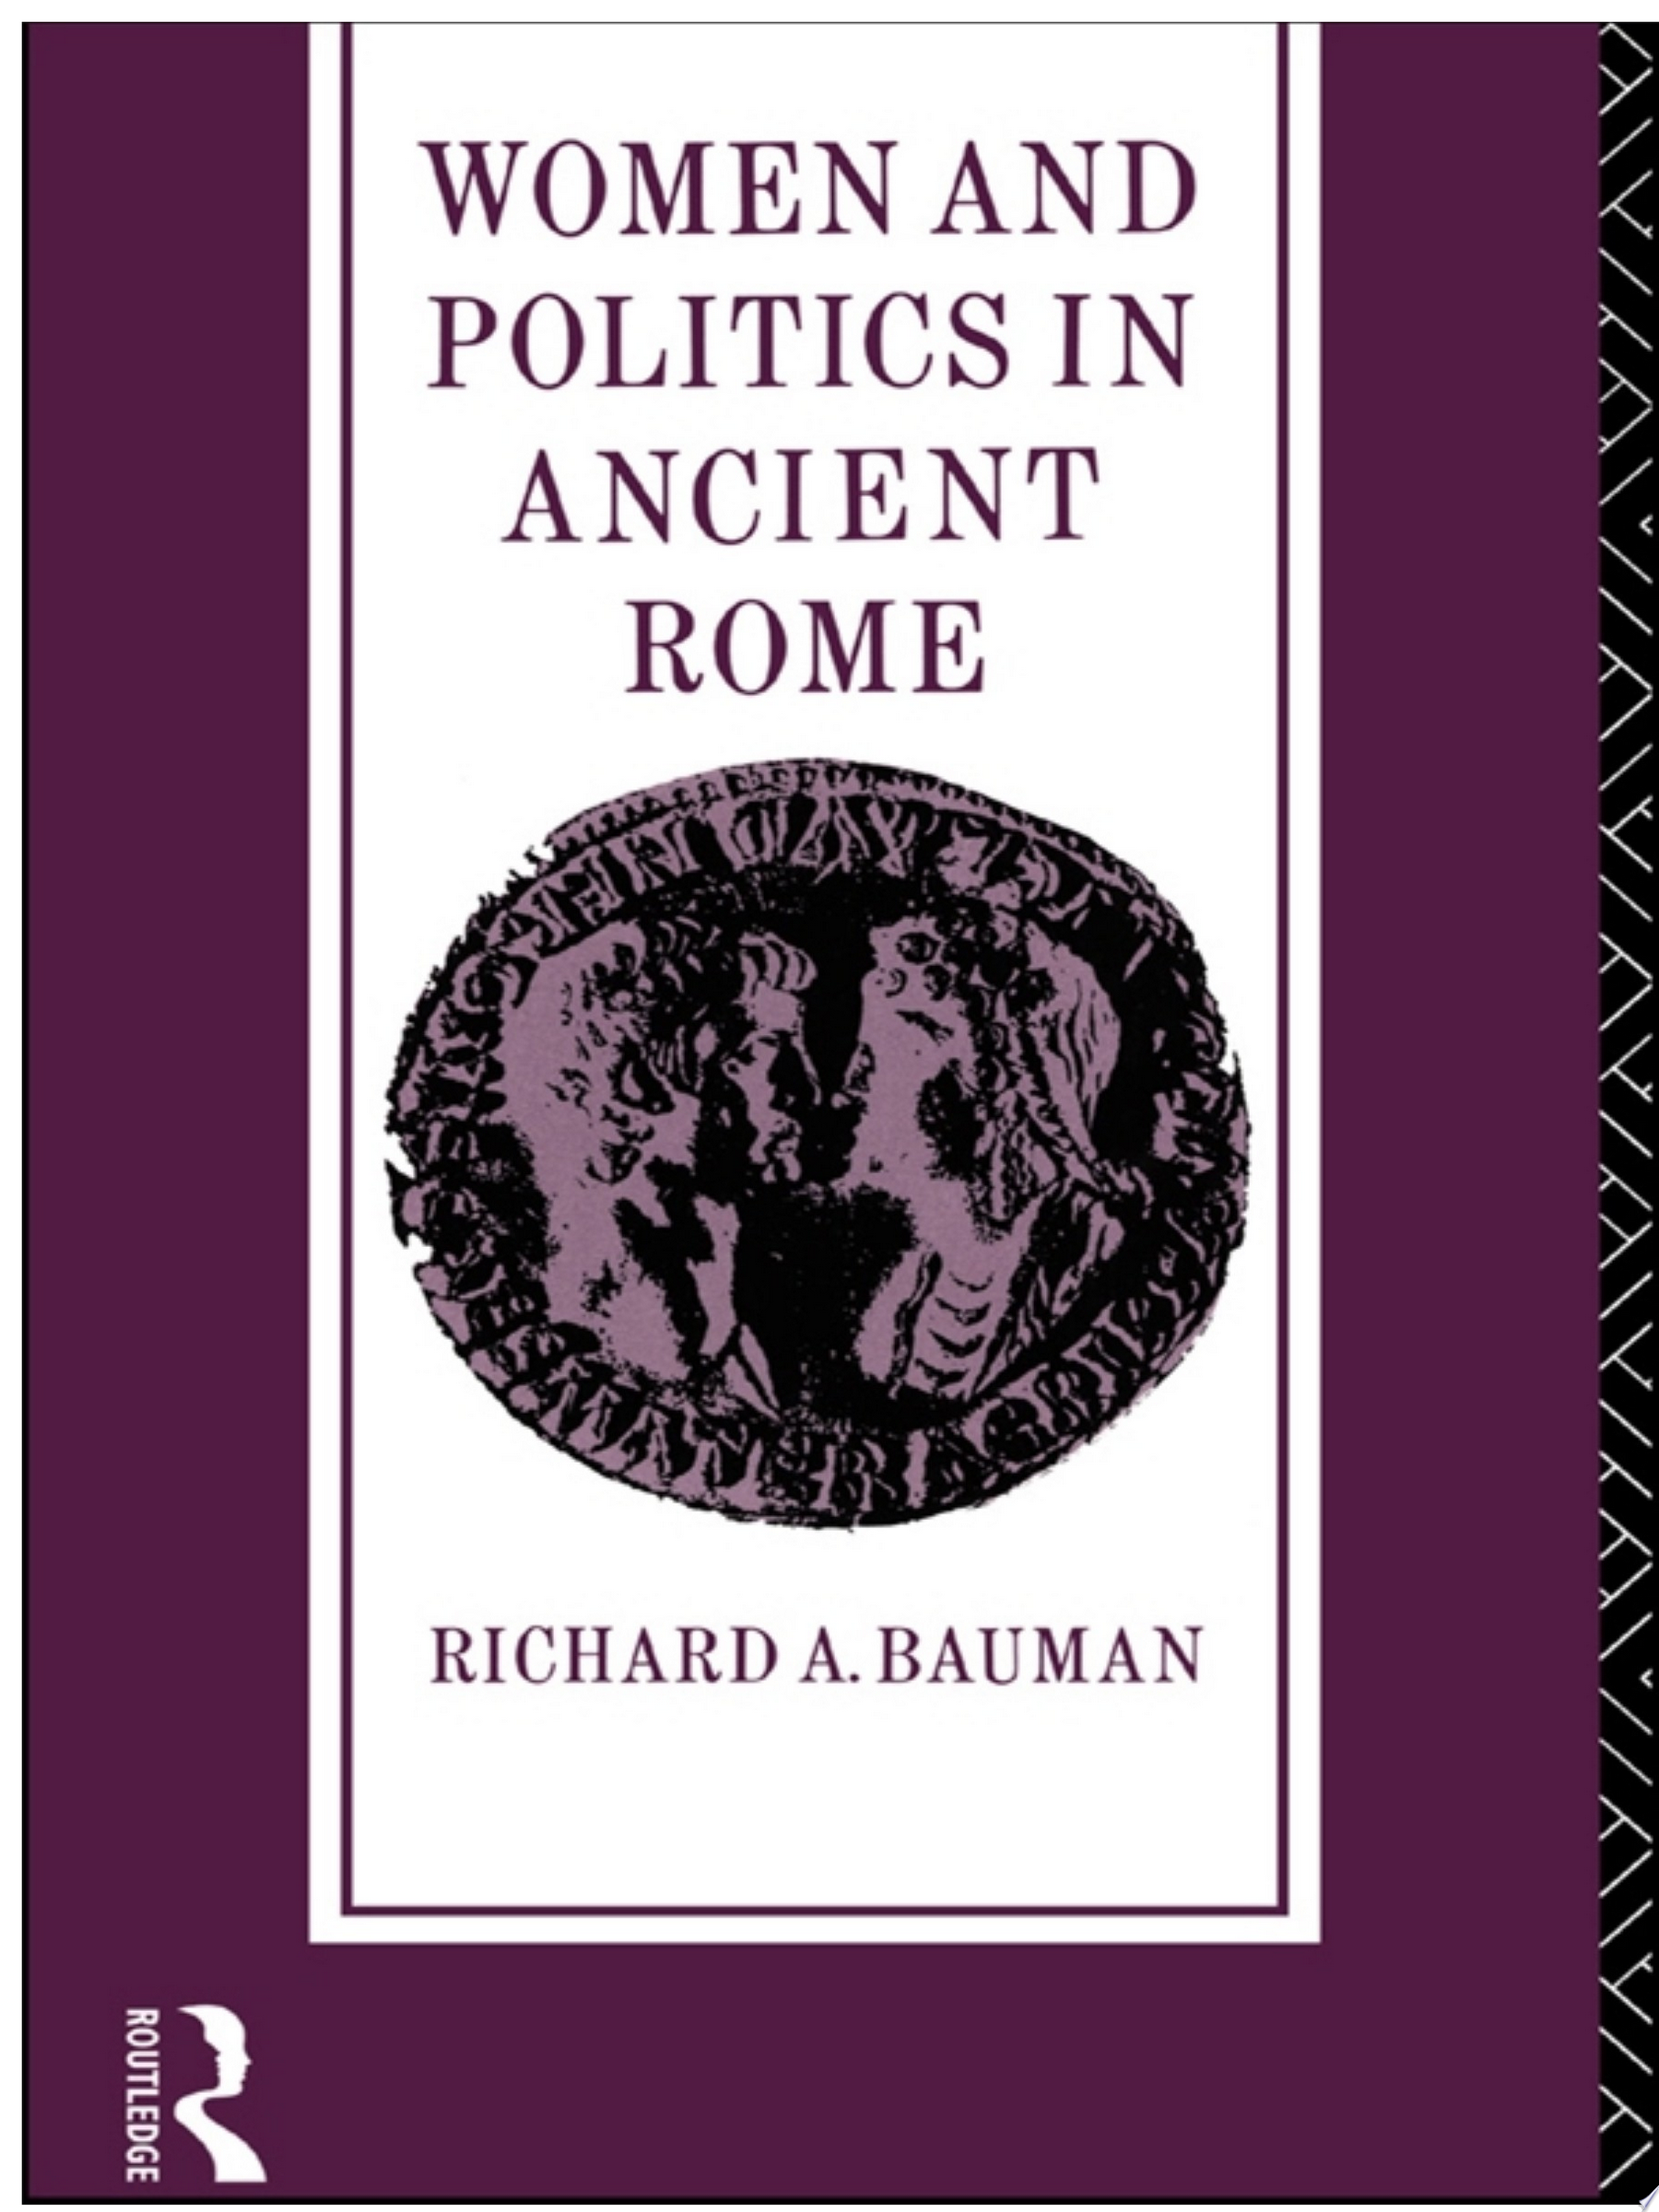 Women and Politics in Ancient Rome